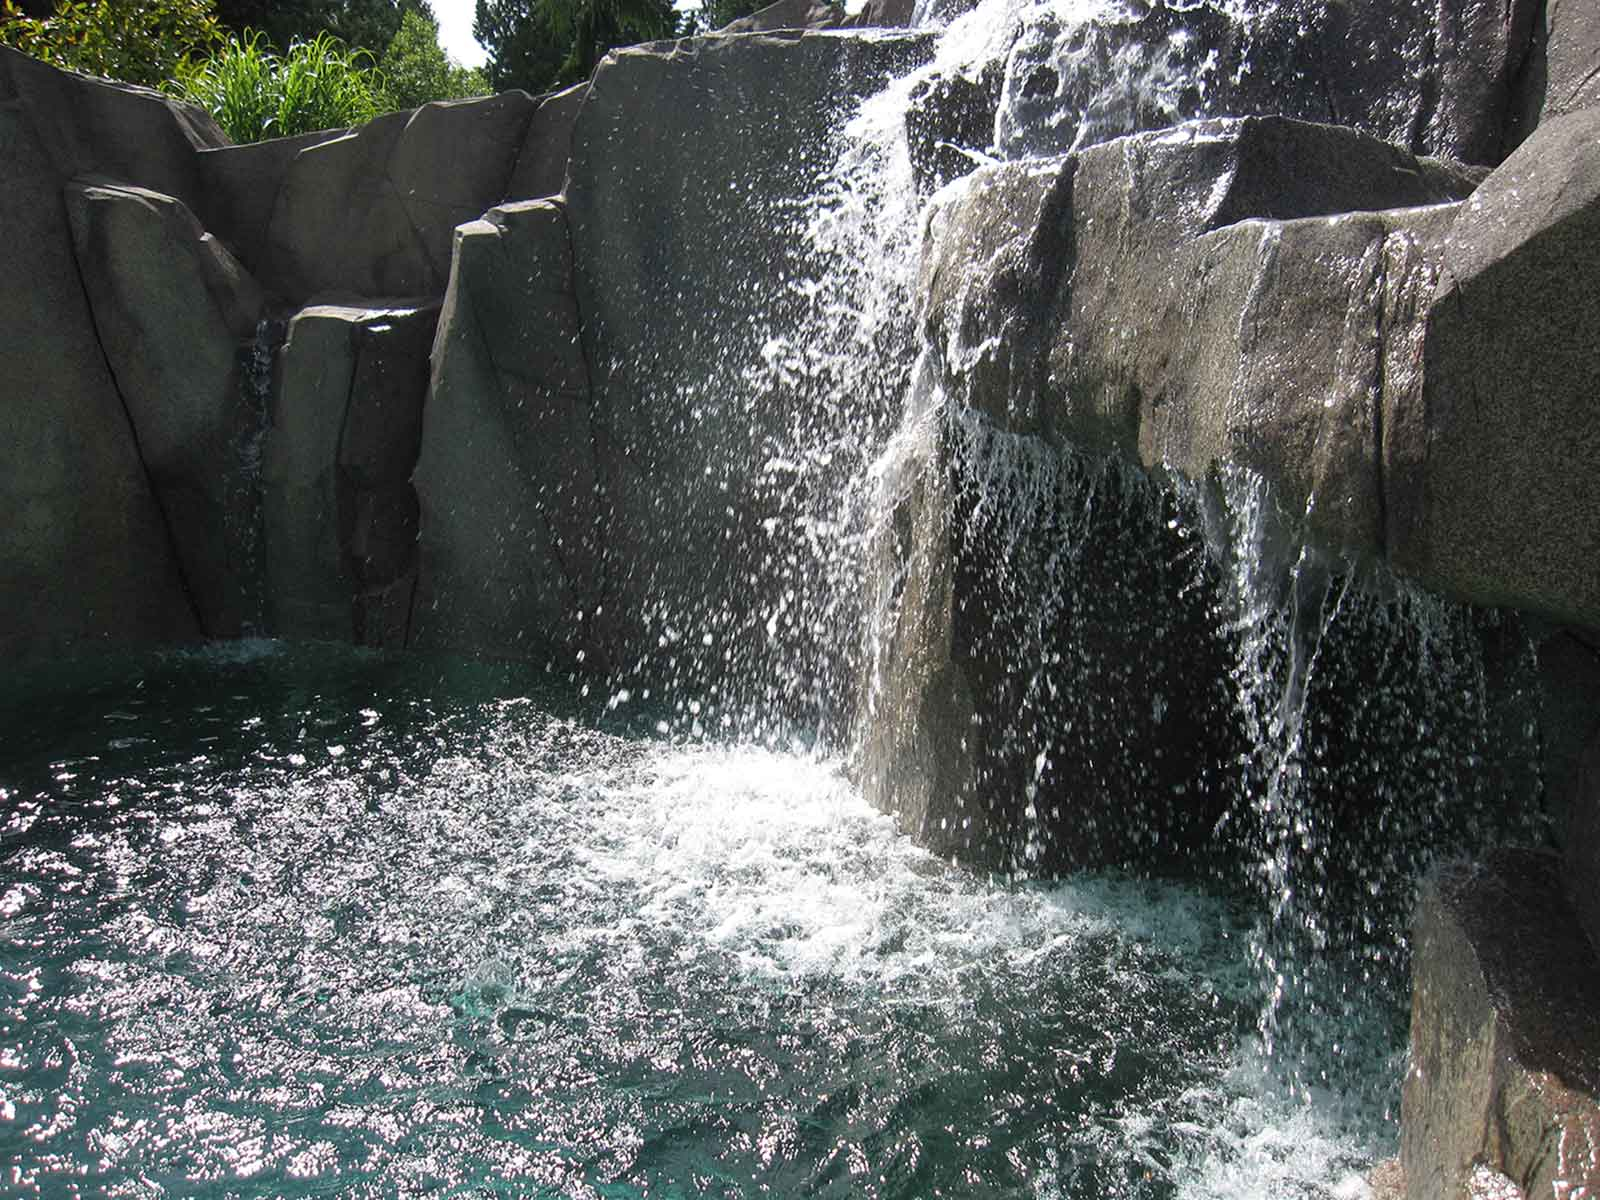 Maintenance-free water fall